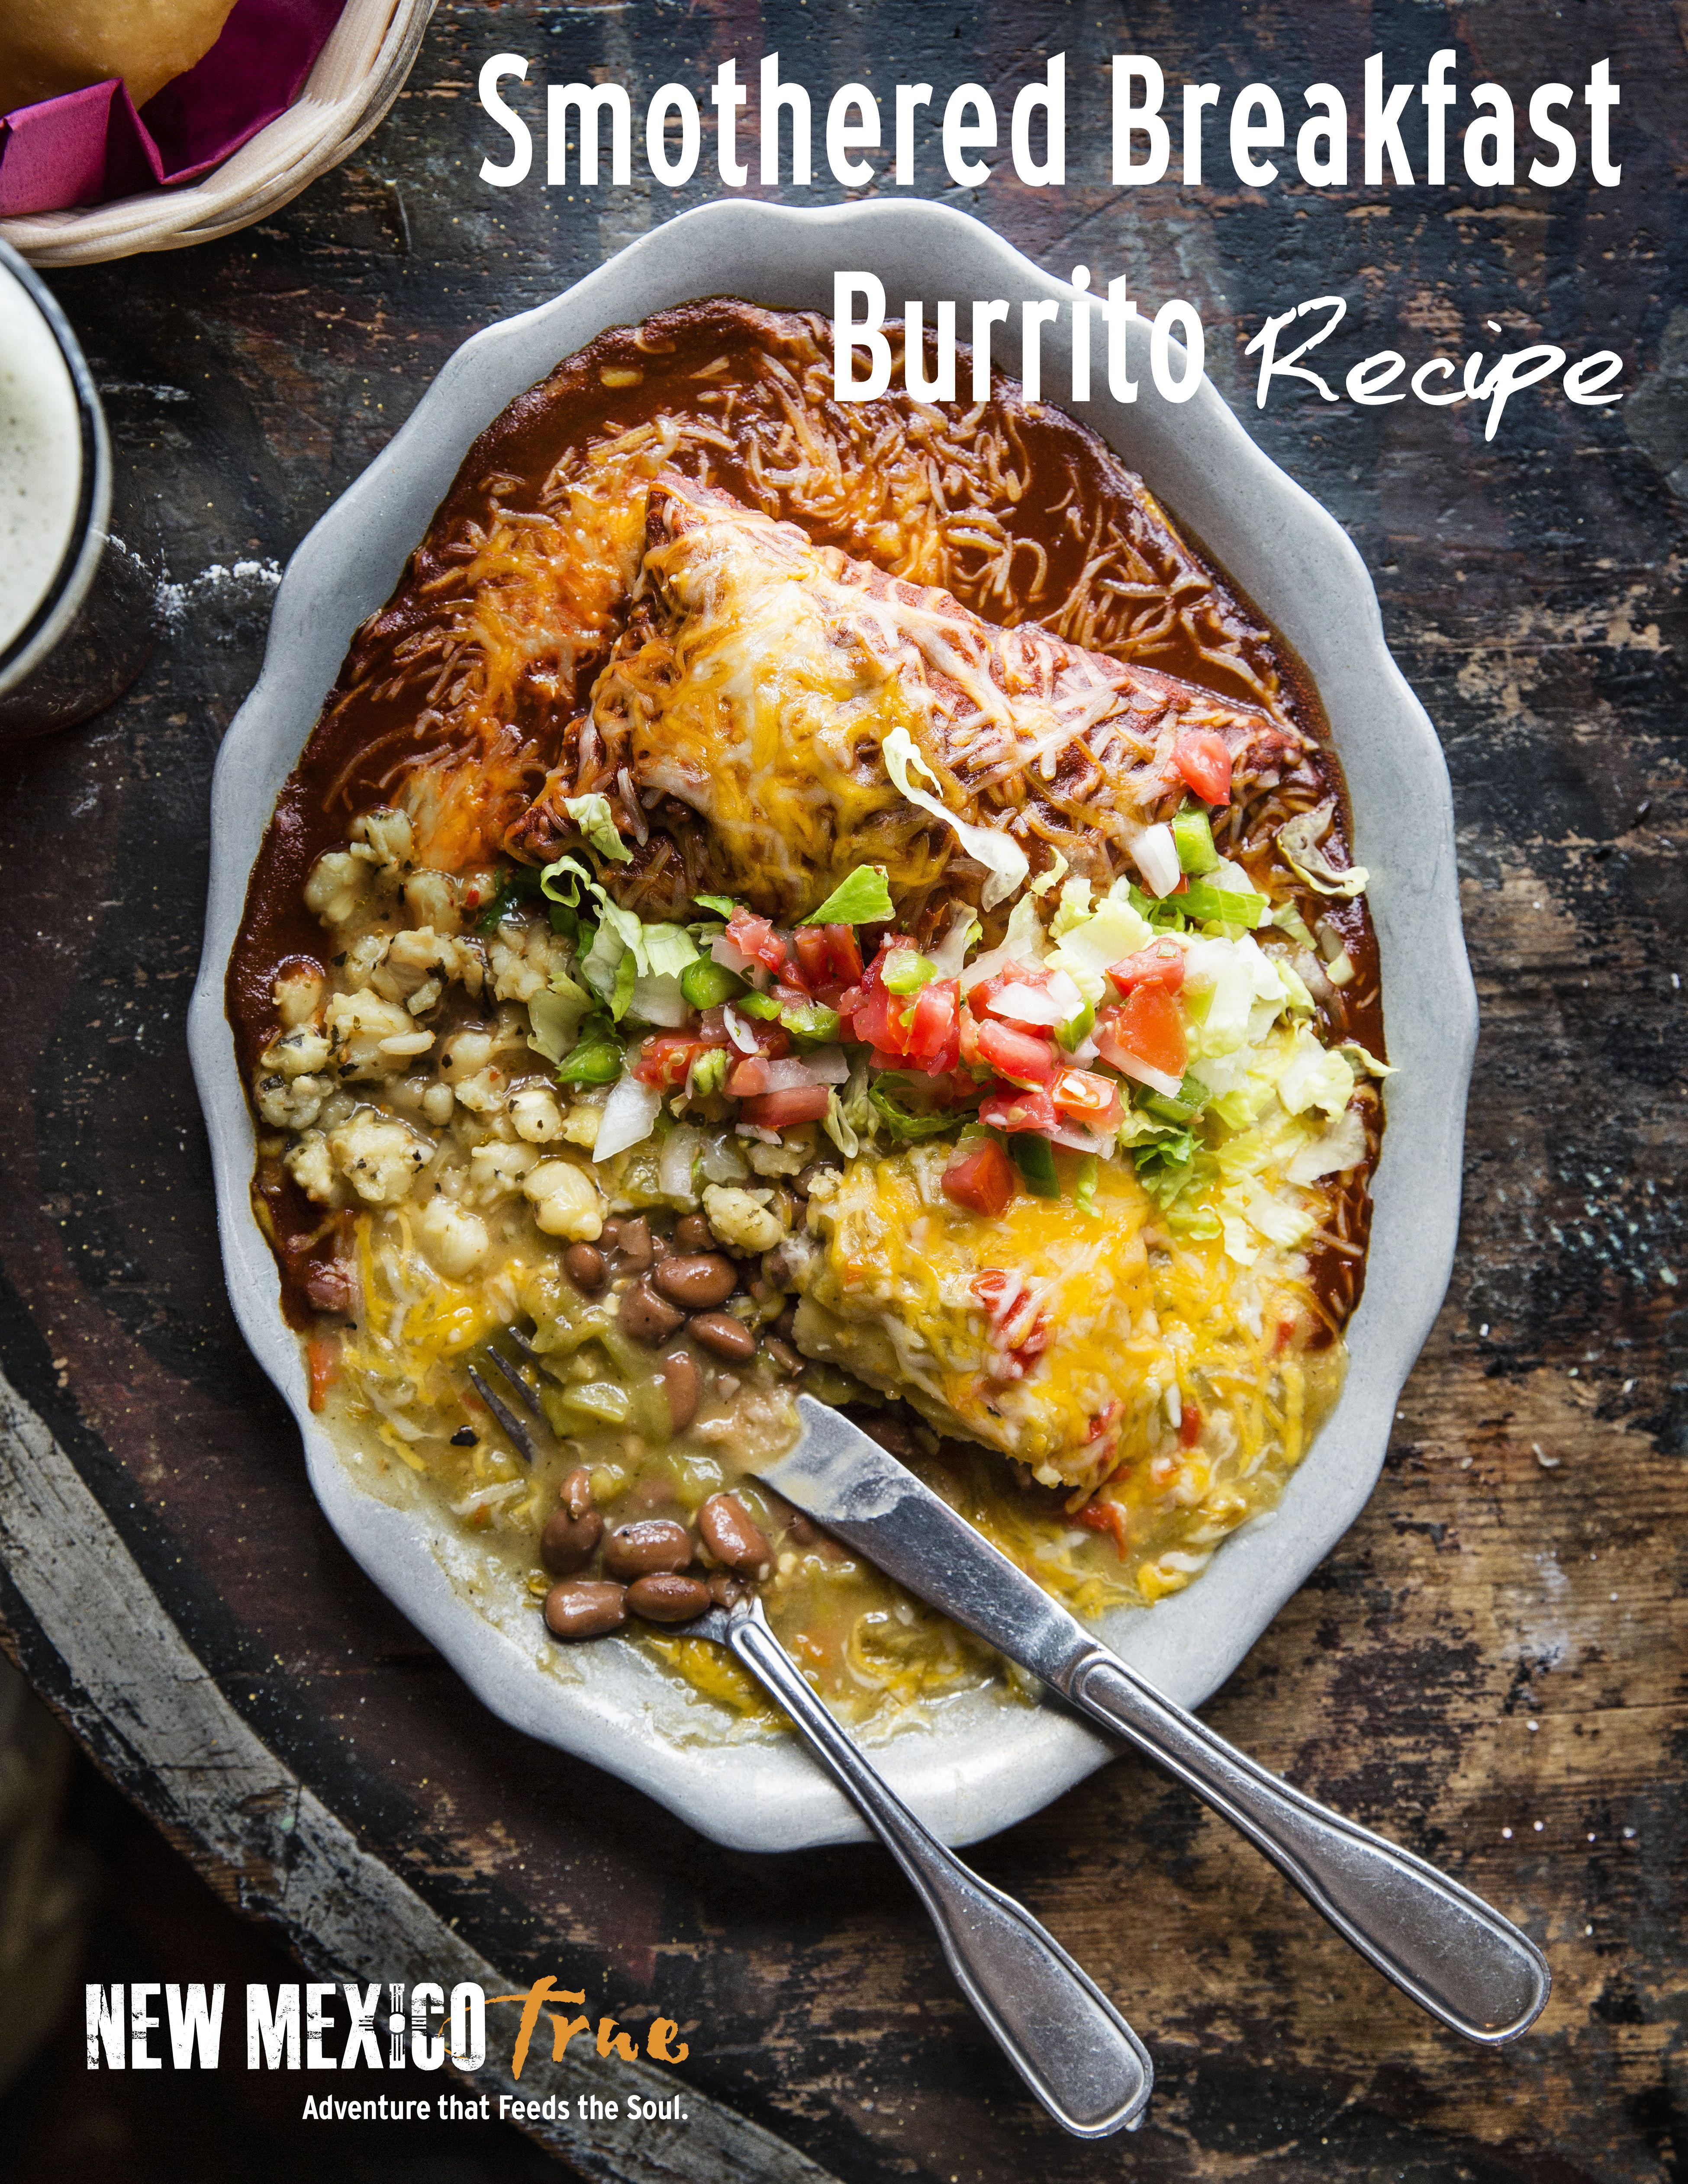 Must Try Smothered Breakfast Burrito Recipe Once You Try It Smothered In Green Chile Sauce No Burrito Mexican Food Recipes Recipes Breakfast Burritos Recipe